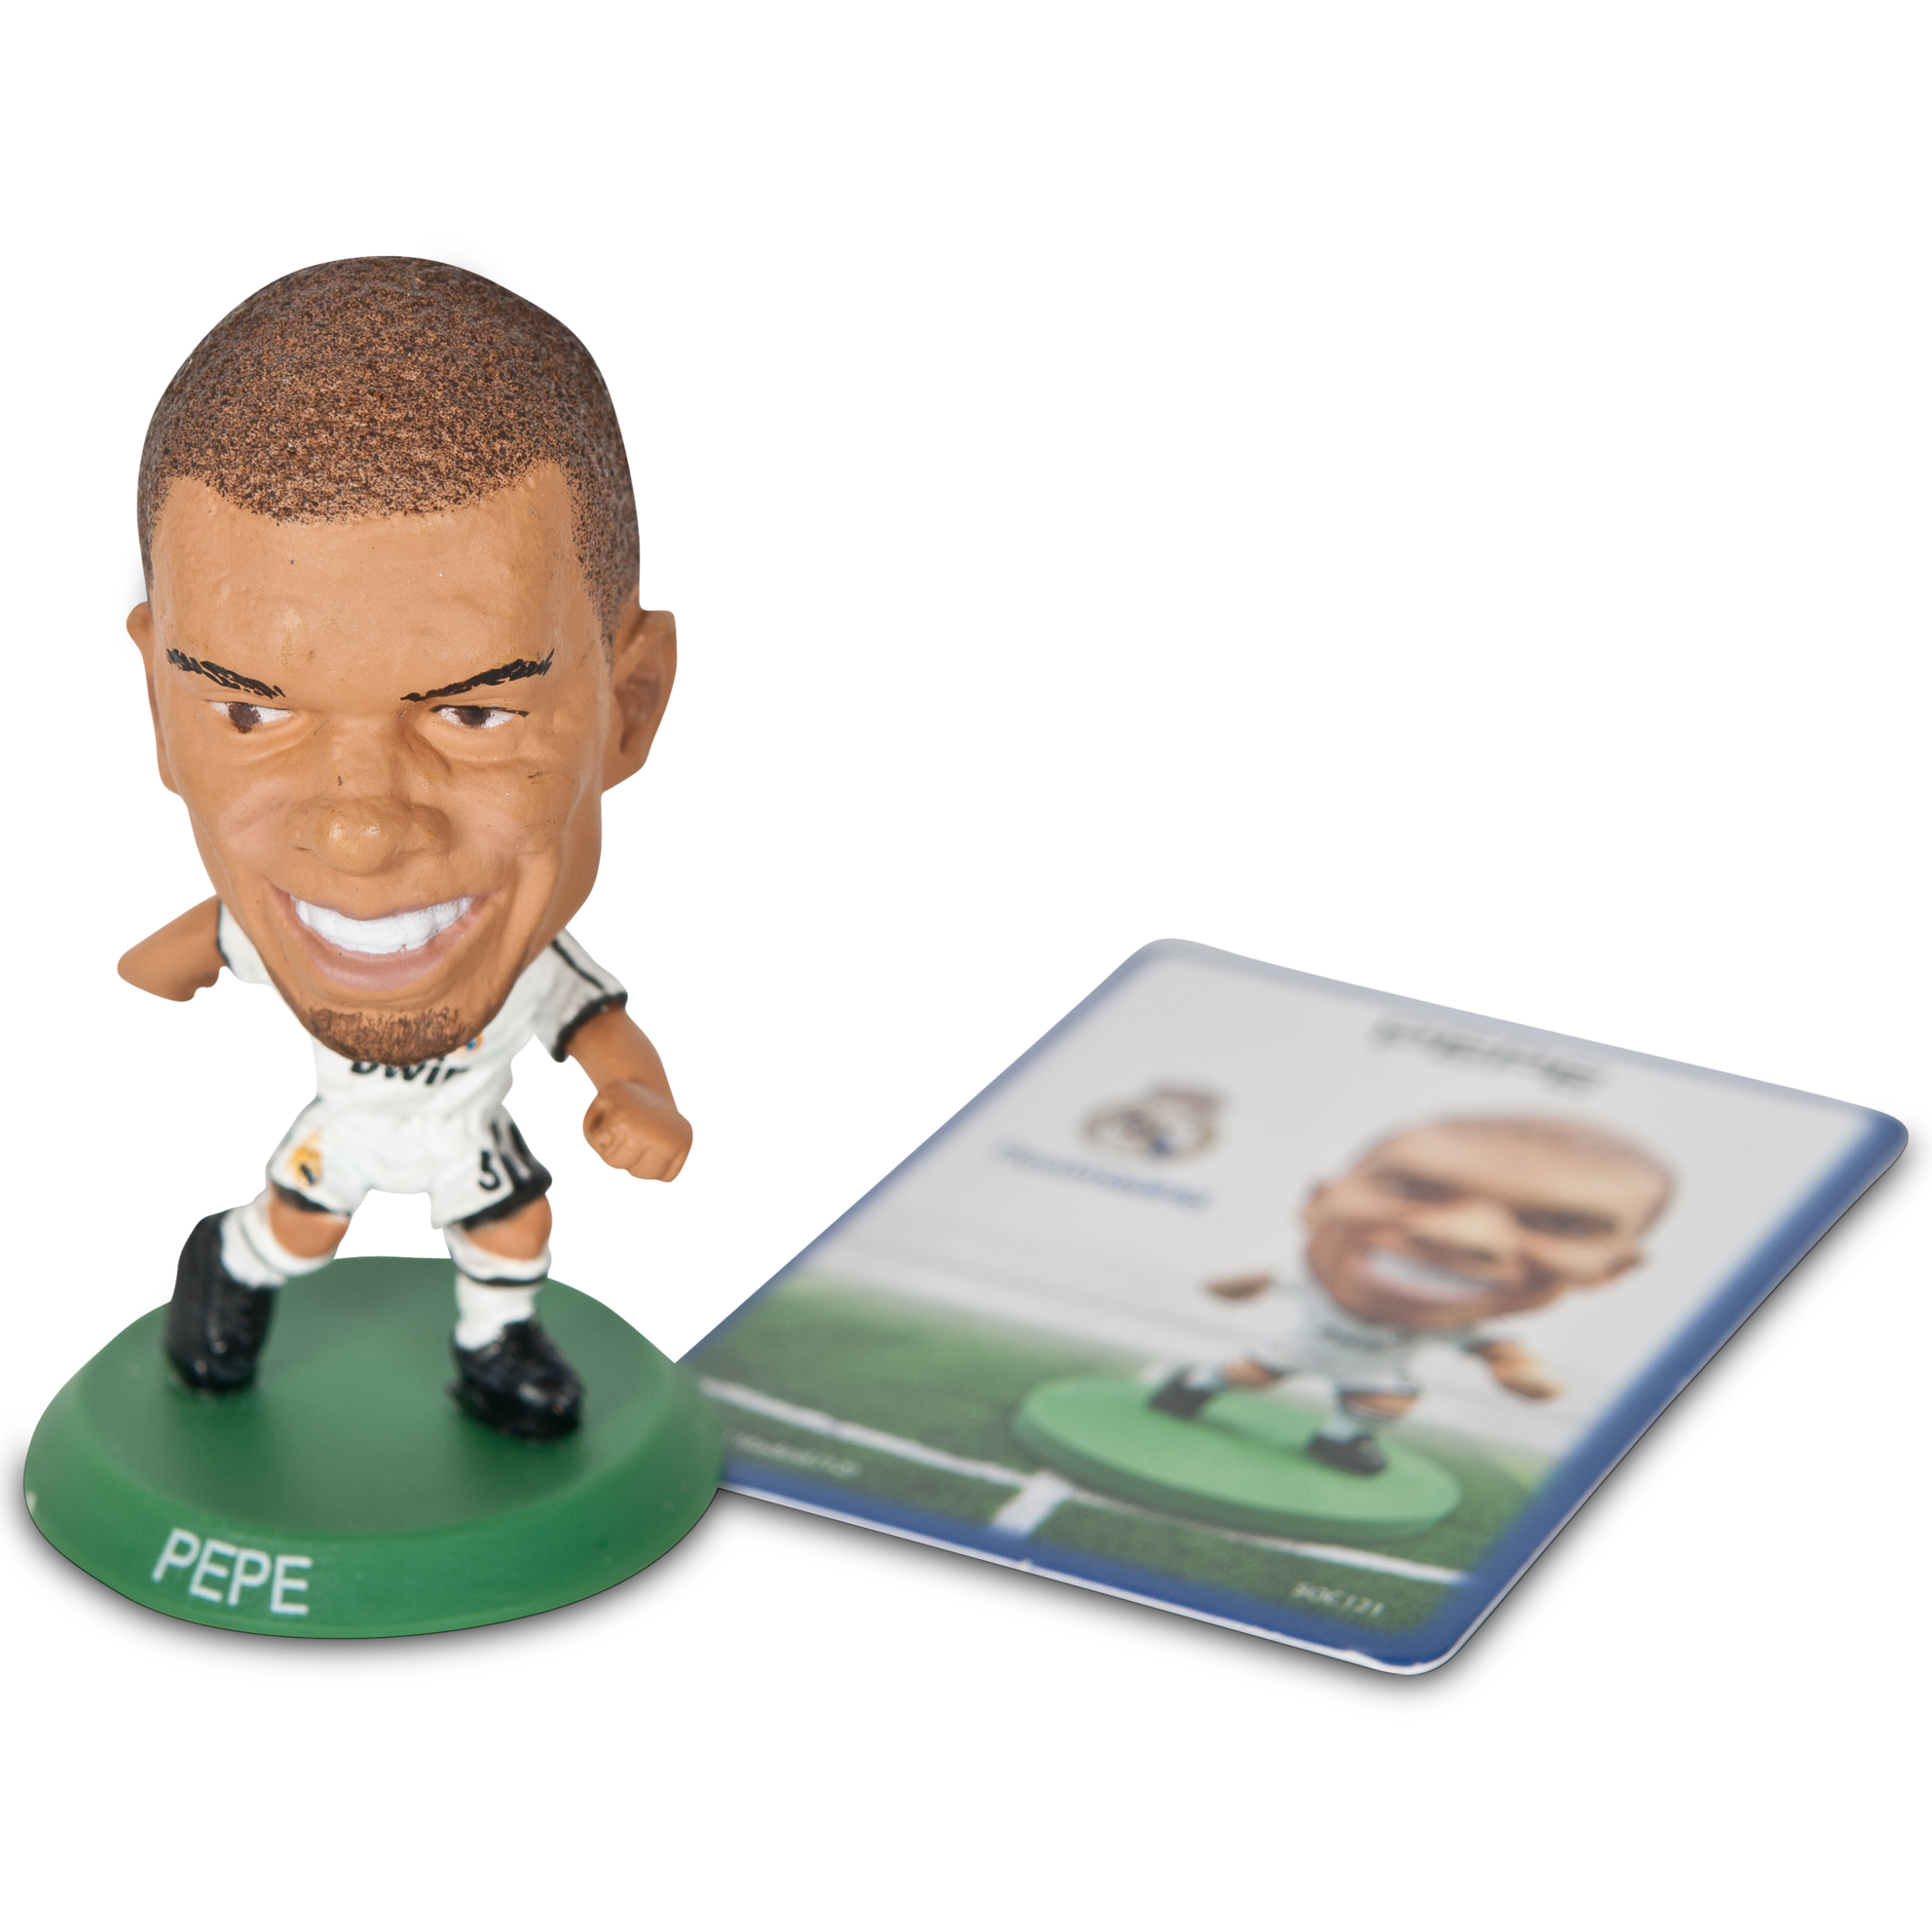 Real Madrid Kelper Laveran (Pepe) Home Soccer Starz